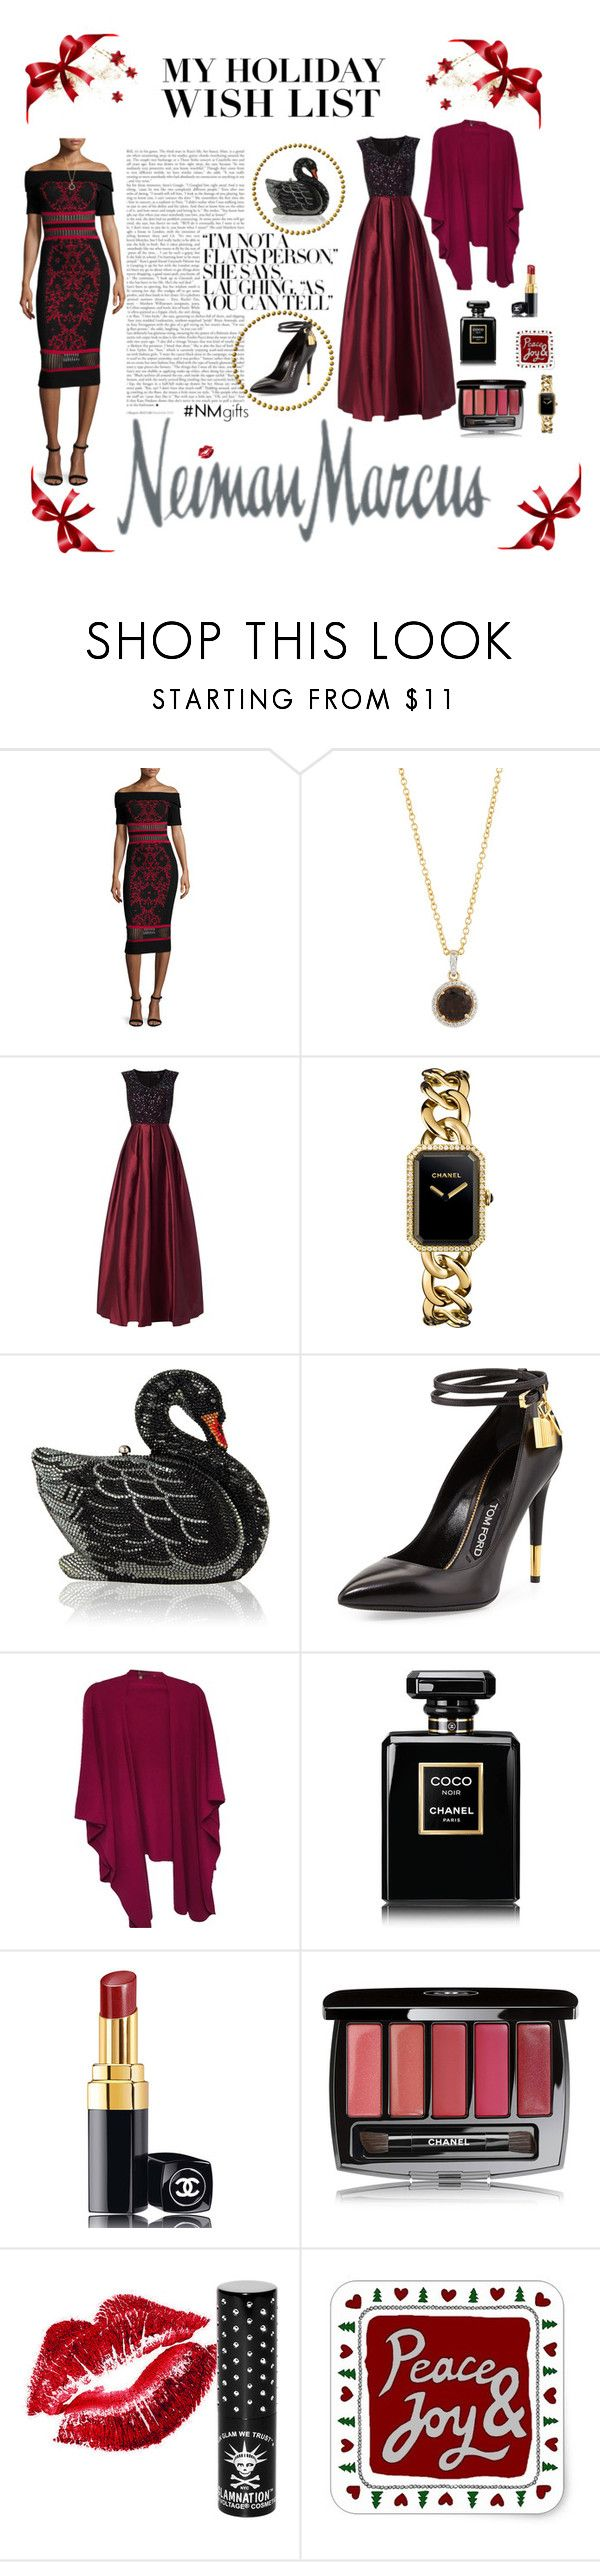 """Newman Marcus Holiday Wish List!"" by donnamc1 ❤ liked on Polyvore featuring Neiman Marcus, RVN, Aidan Mattox, Chanel, Judith Leiber, Tom Ford and Manic Panic NYC"